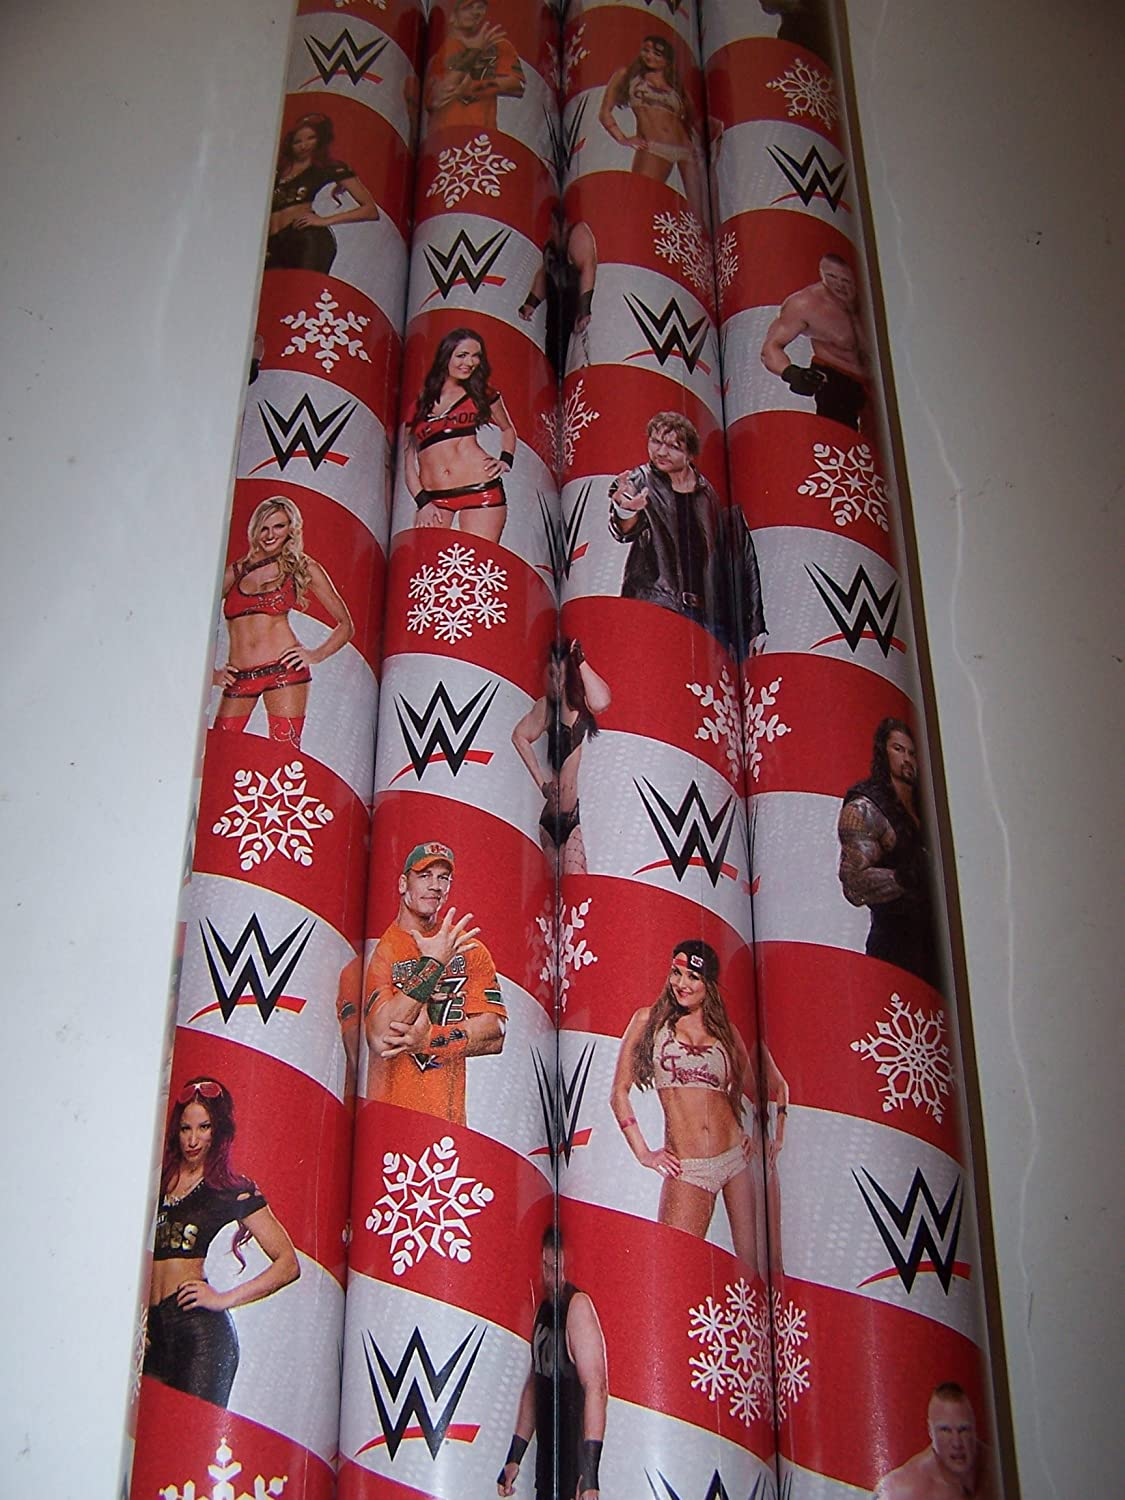 Amazon.com: WWE Wrapping Paper Christmas Gift Wrap (1 Roll, 70 Sq ...